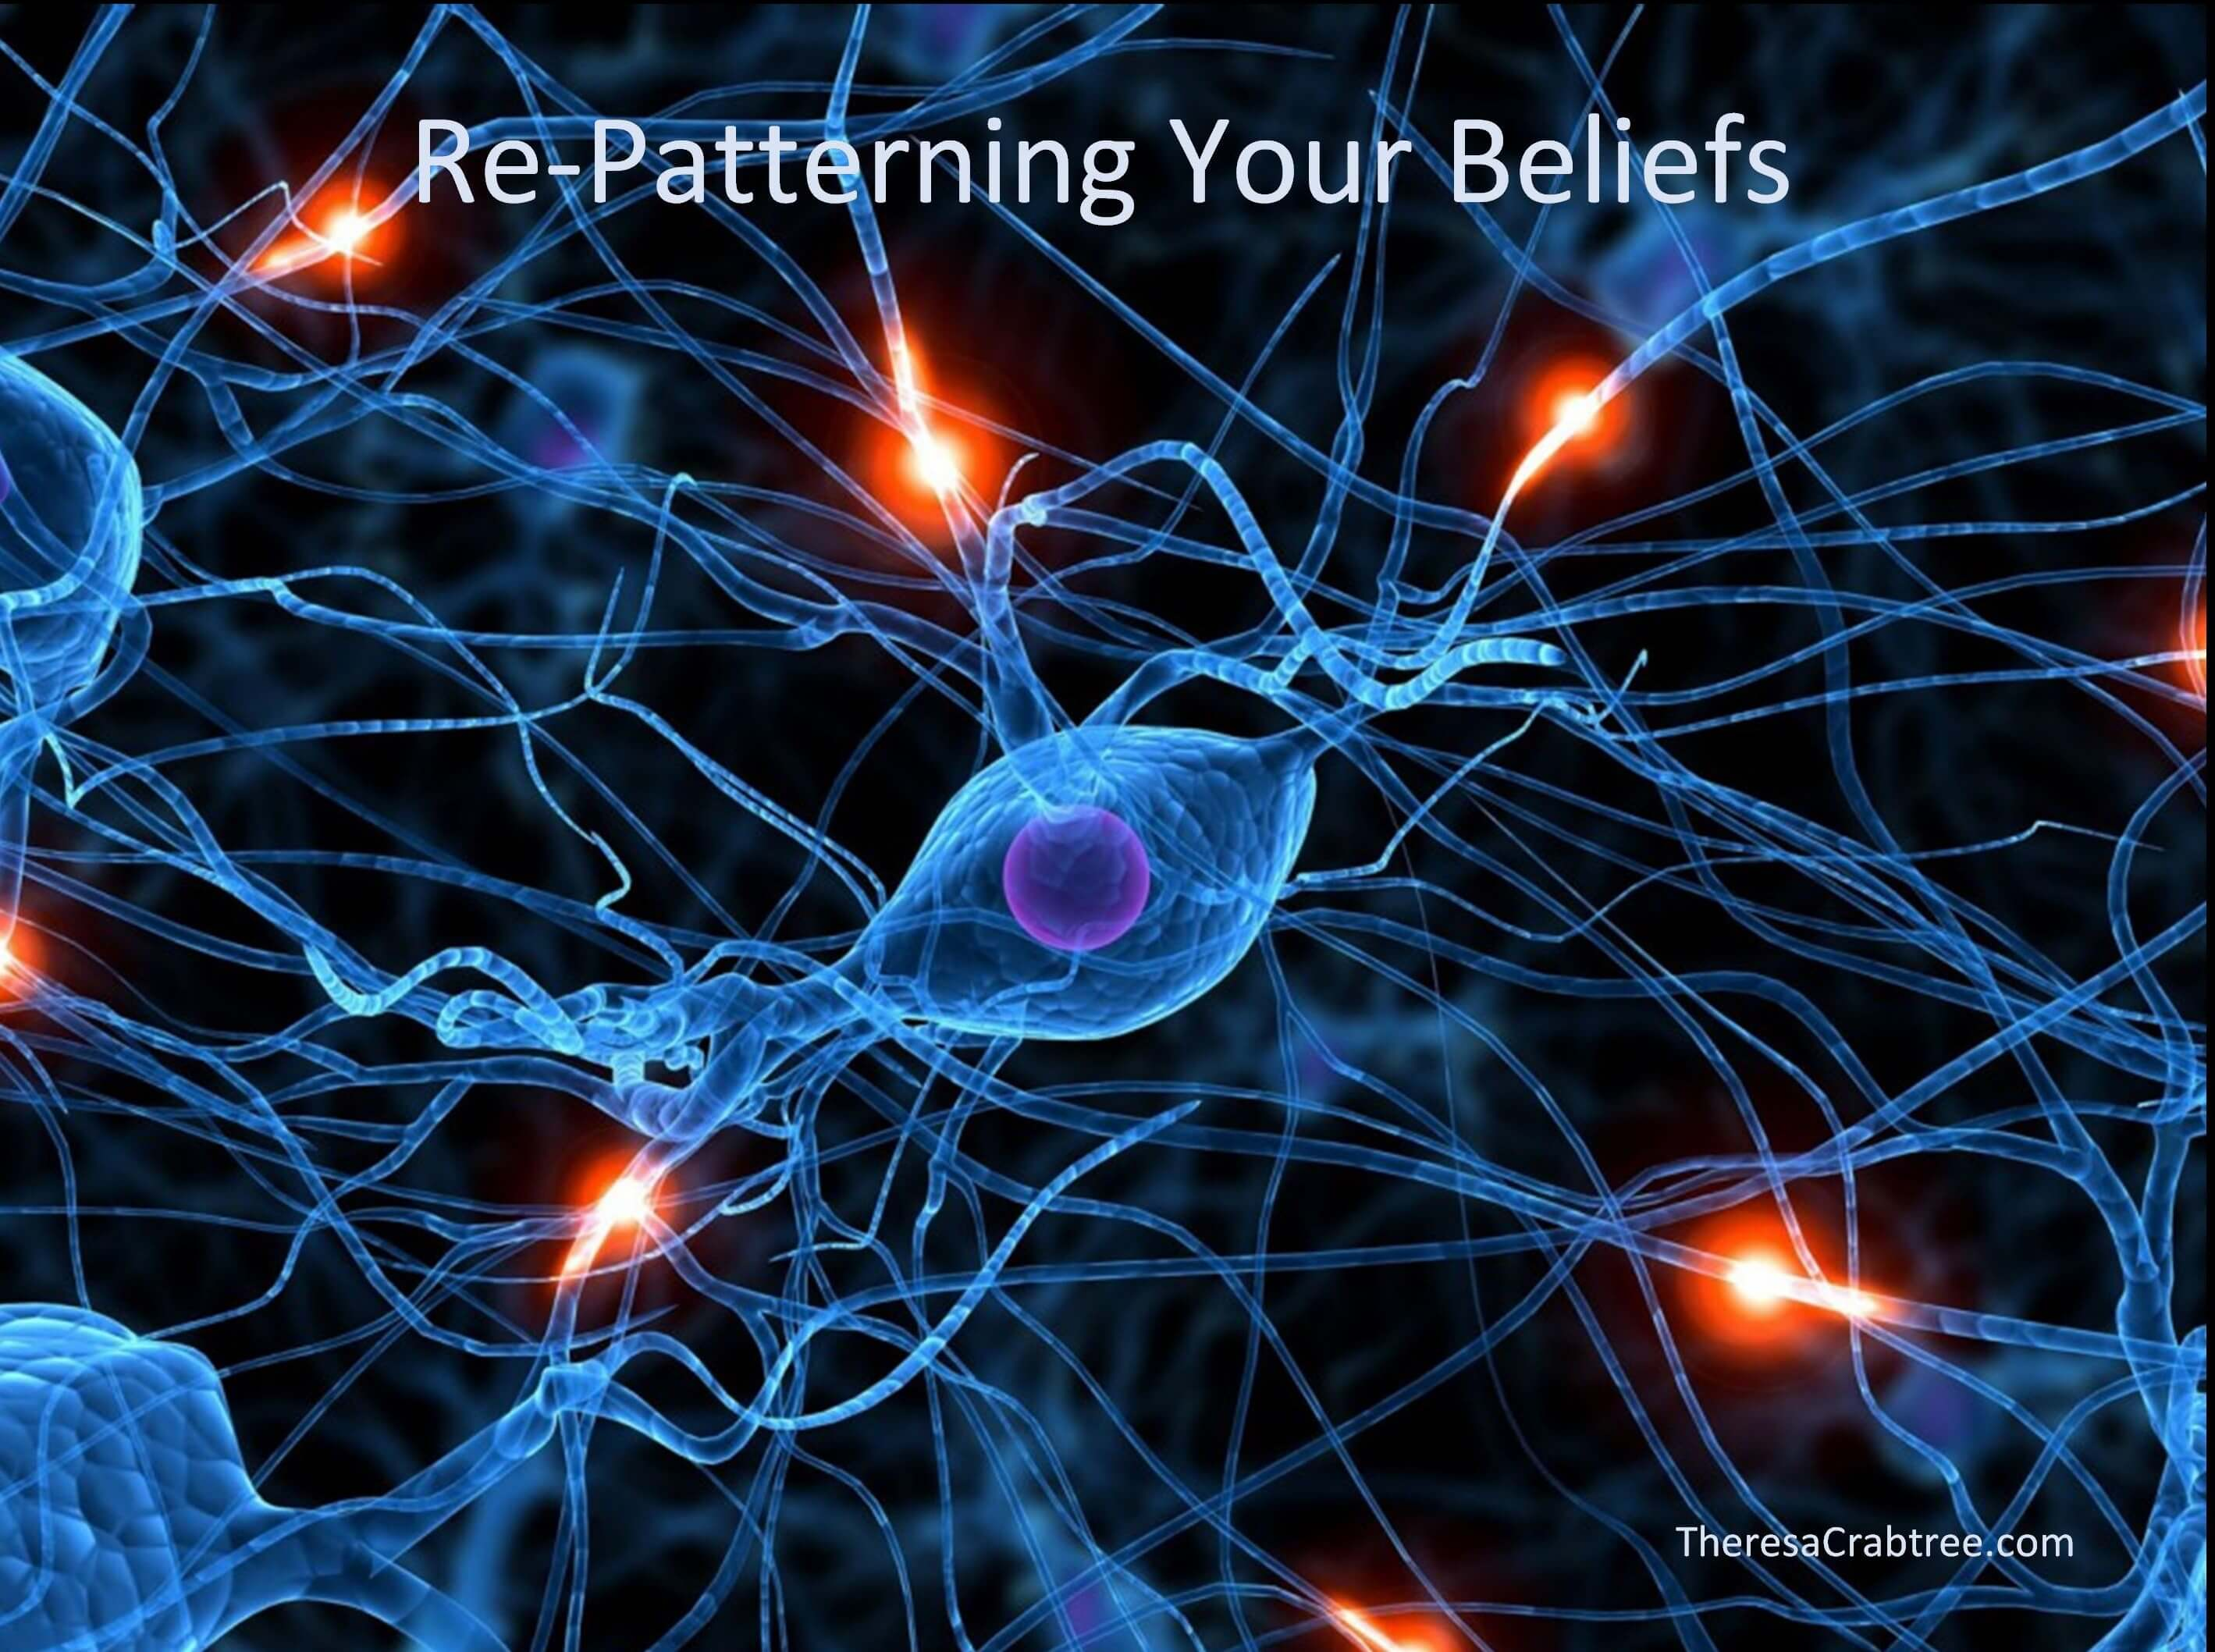 Re-Patterning Your Beliefs